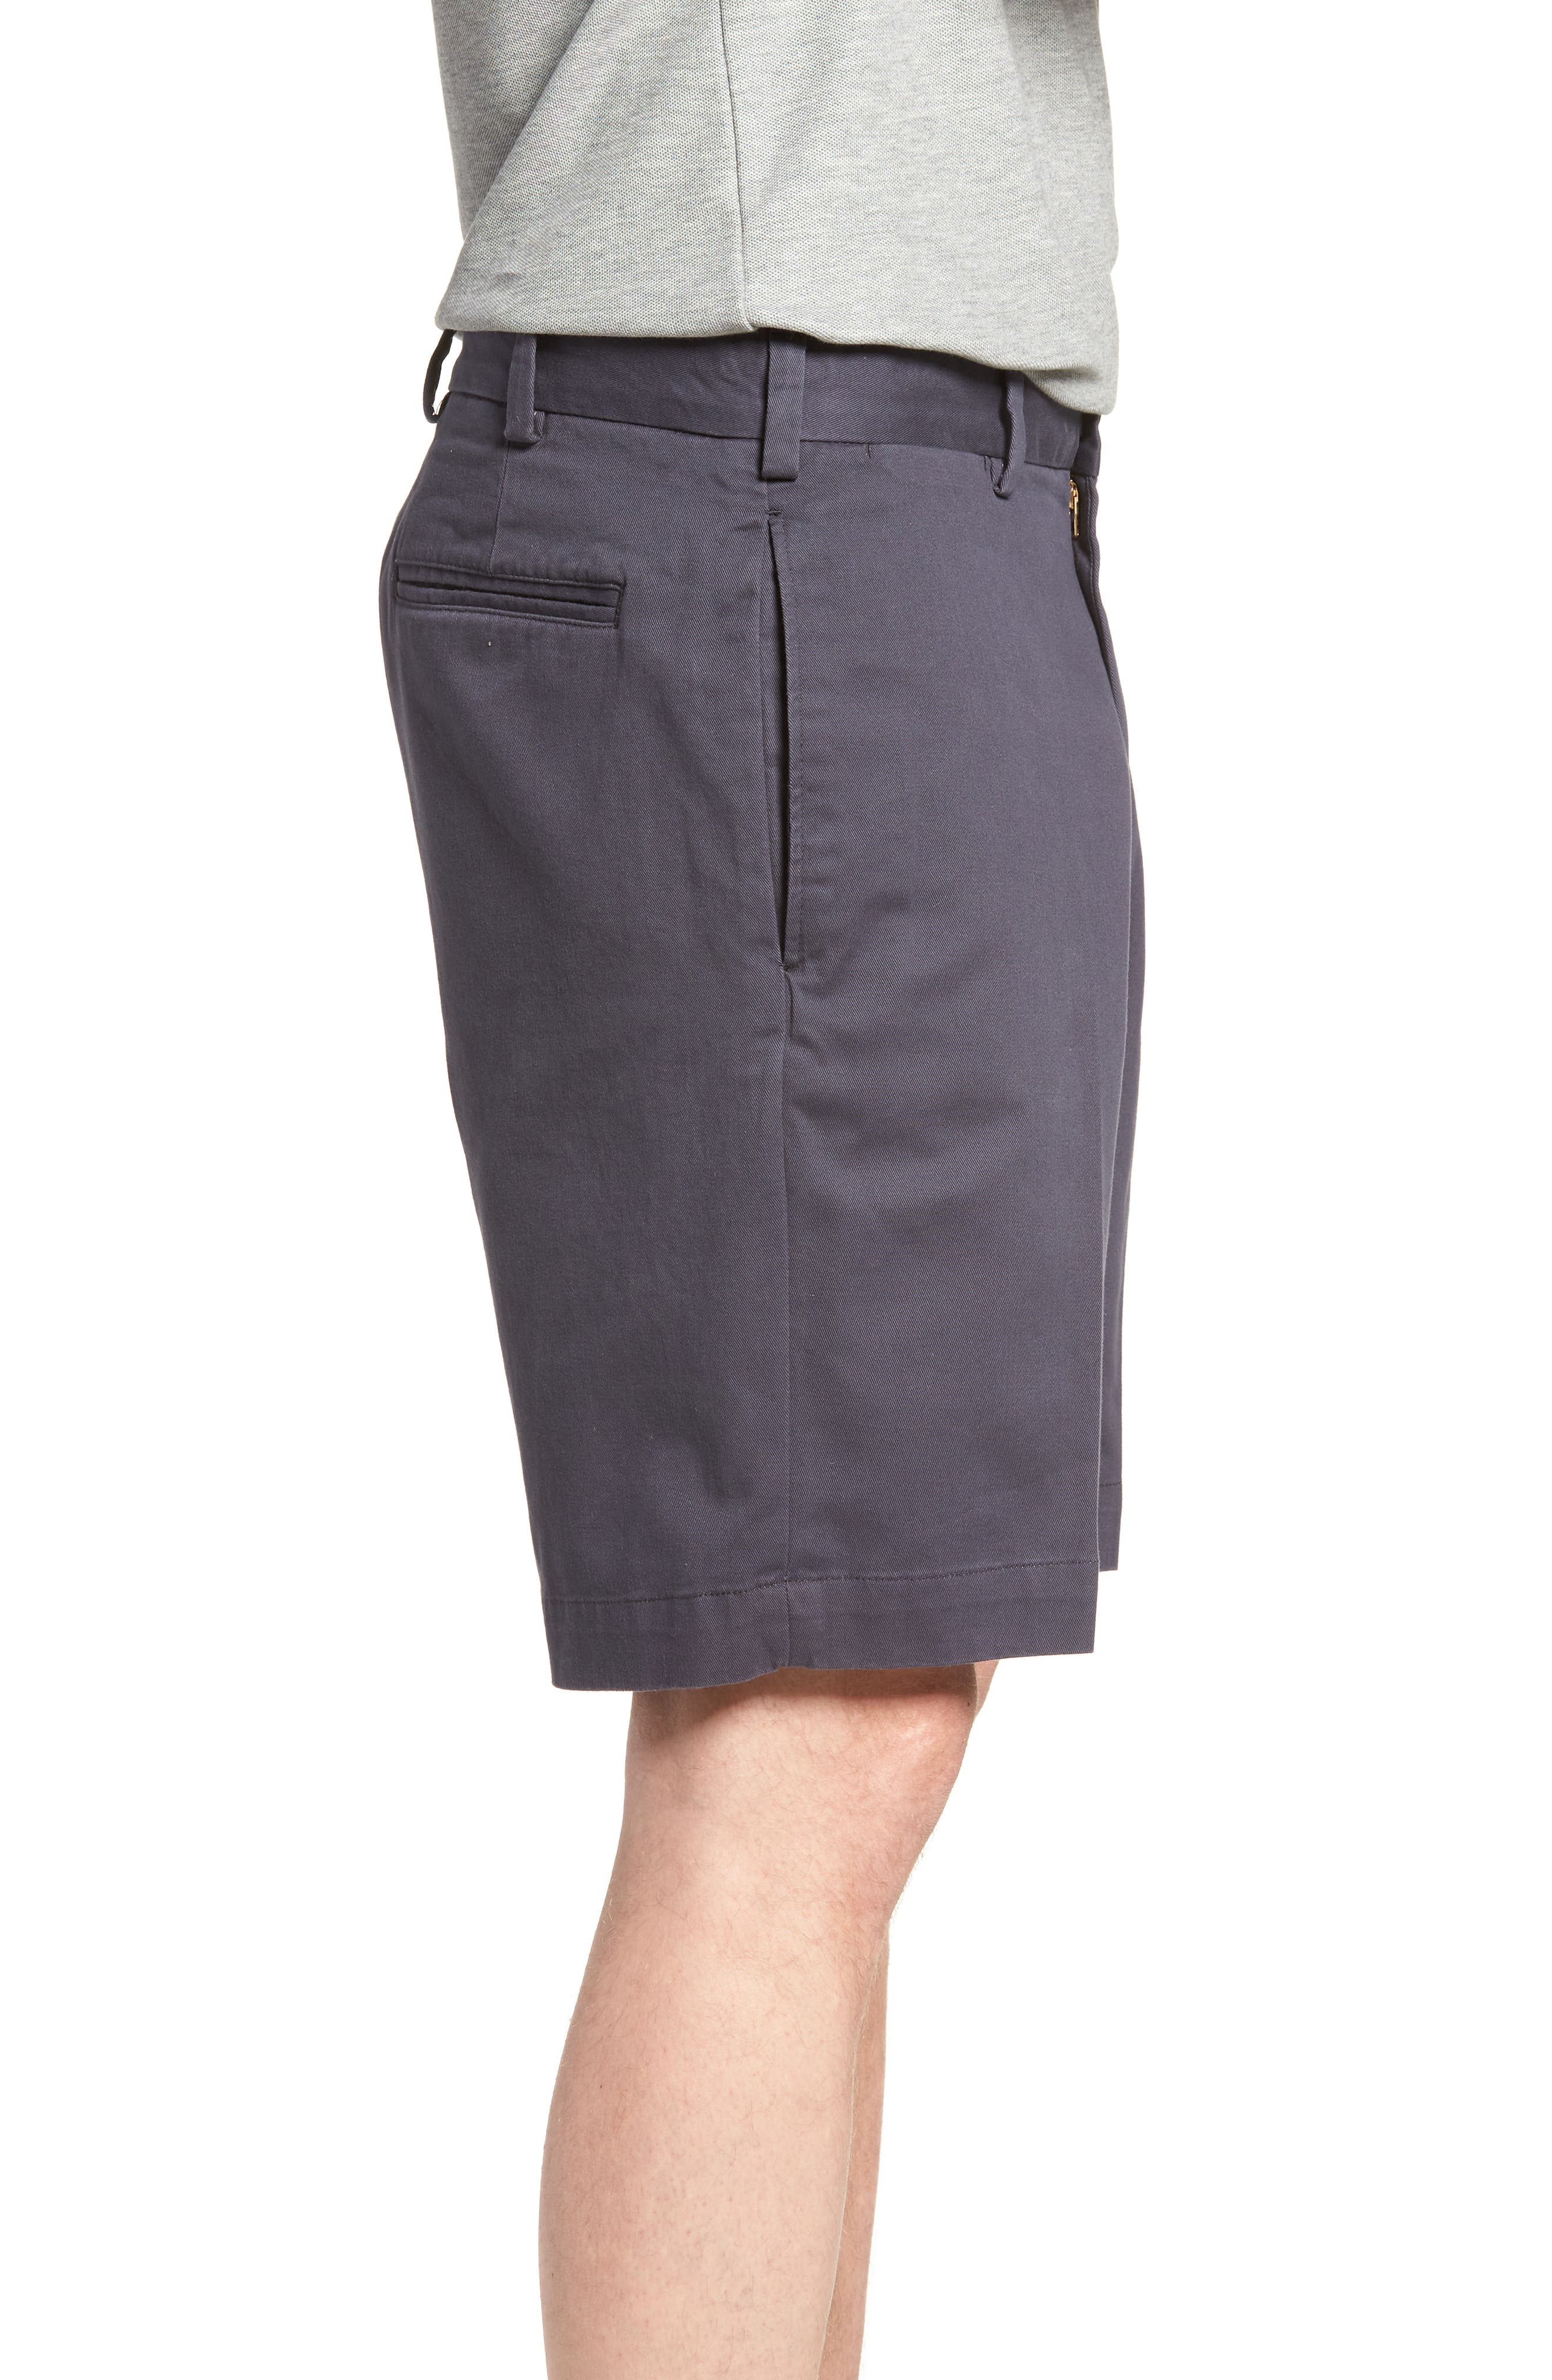 M2 Classic Fit Flat Front Vintage Twill Shorts,                             Alternate thumbnail 3, color,